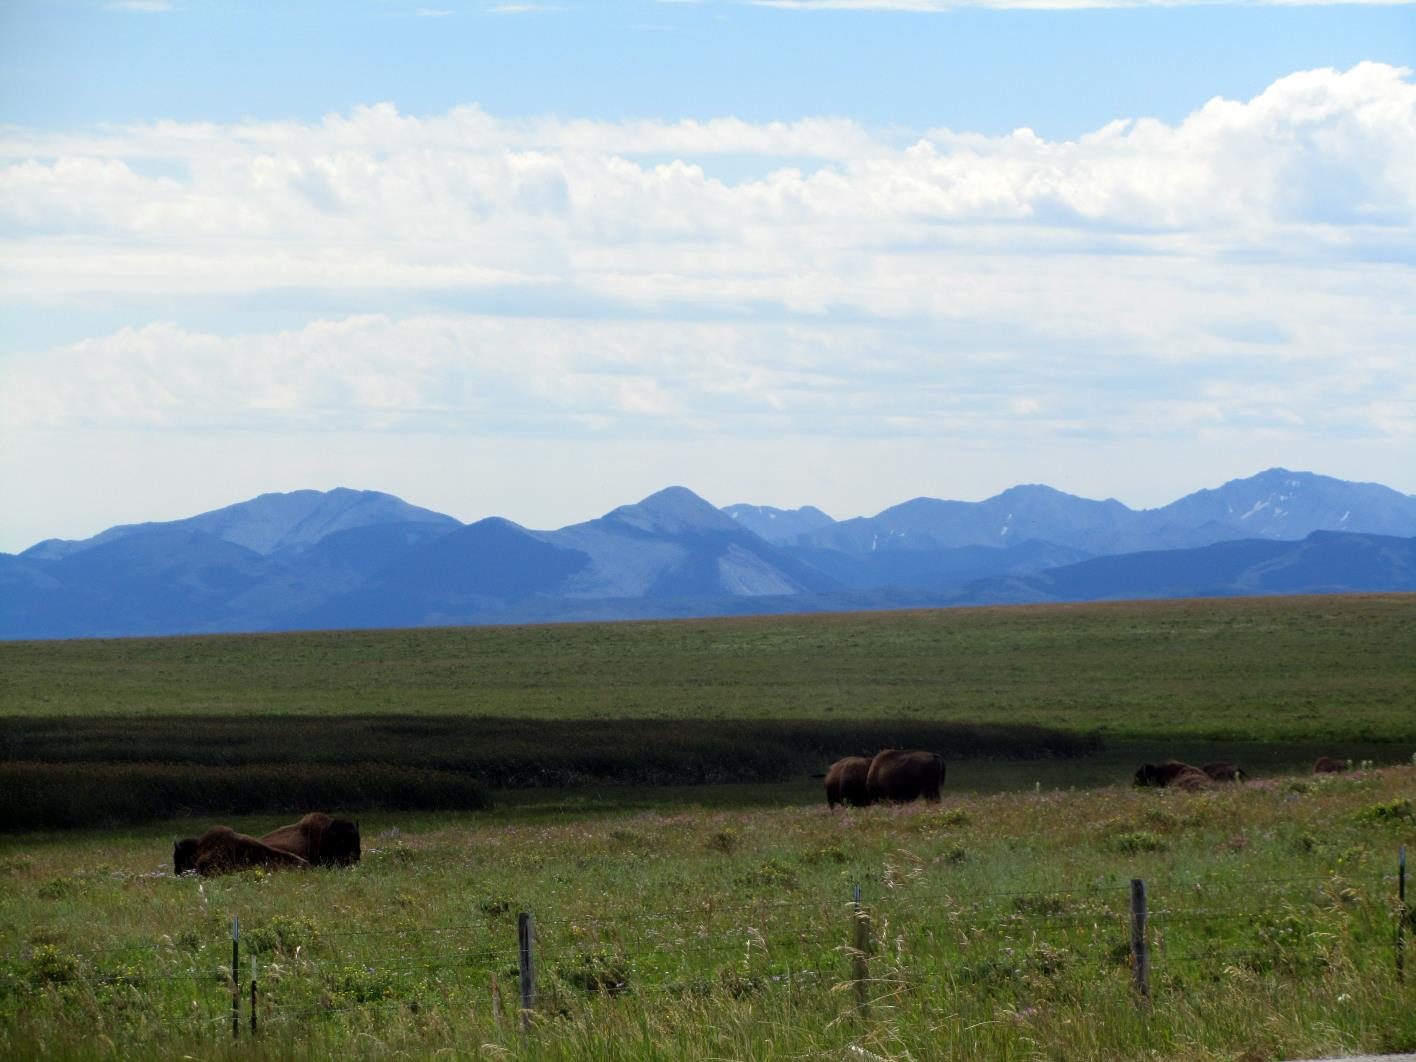 Bison near Browning, MT